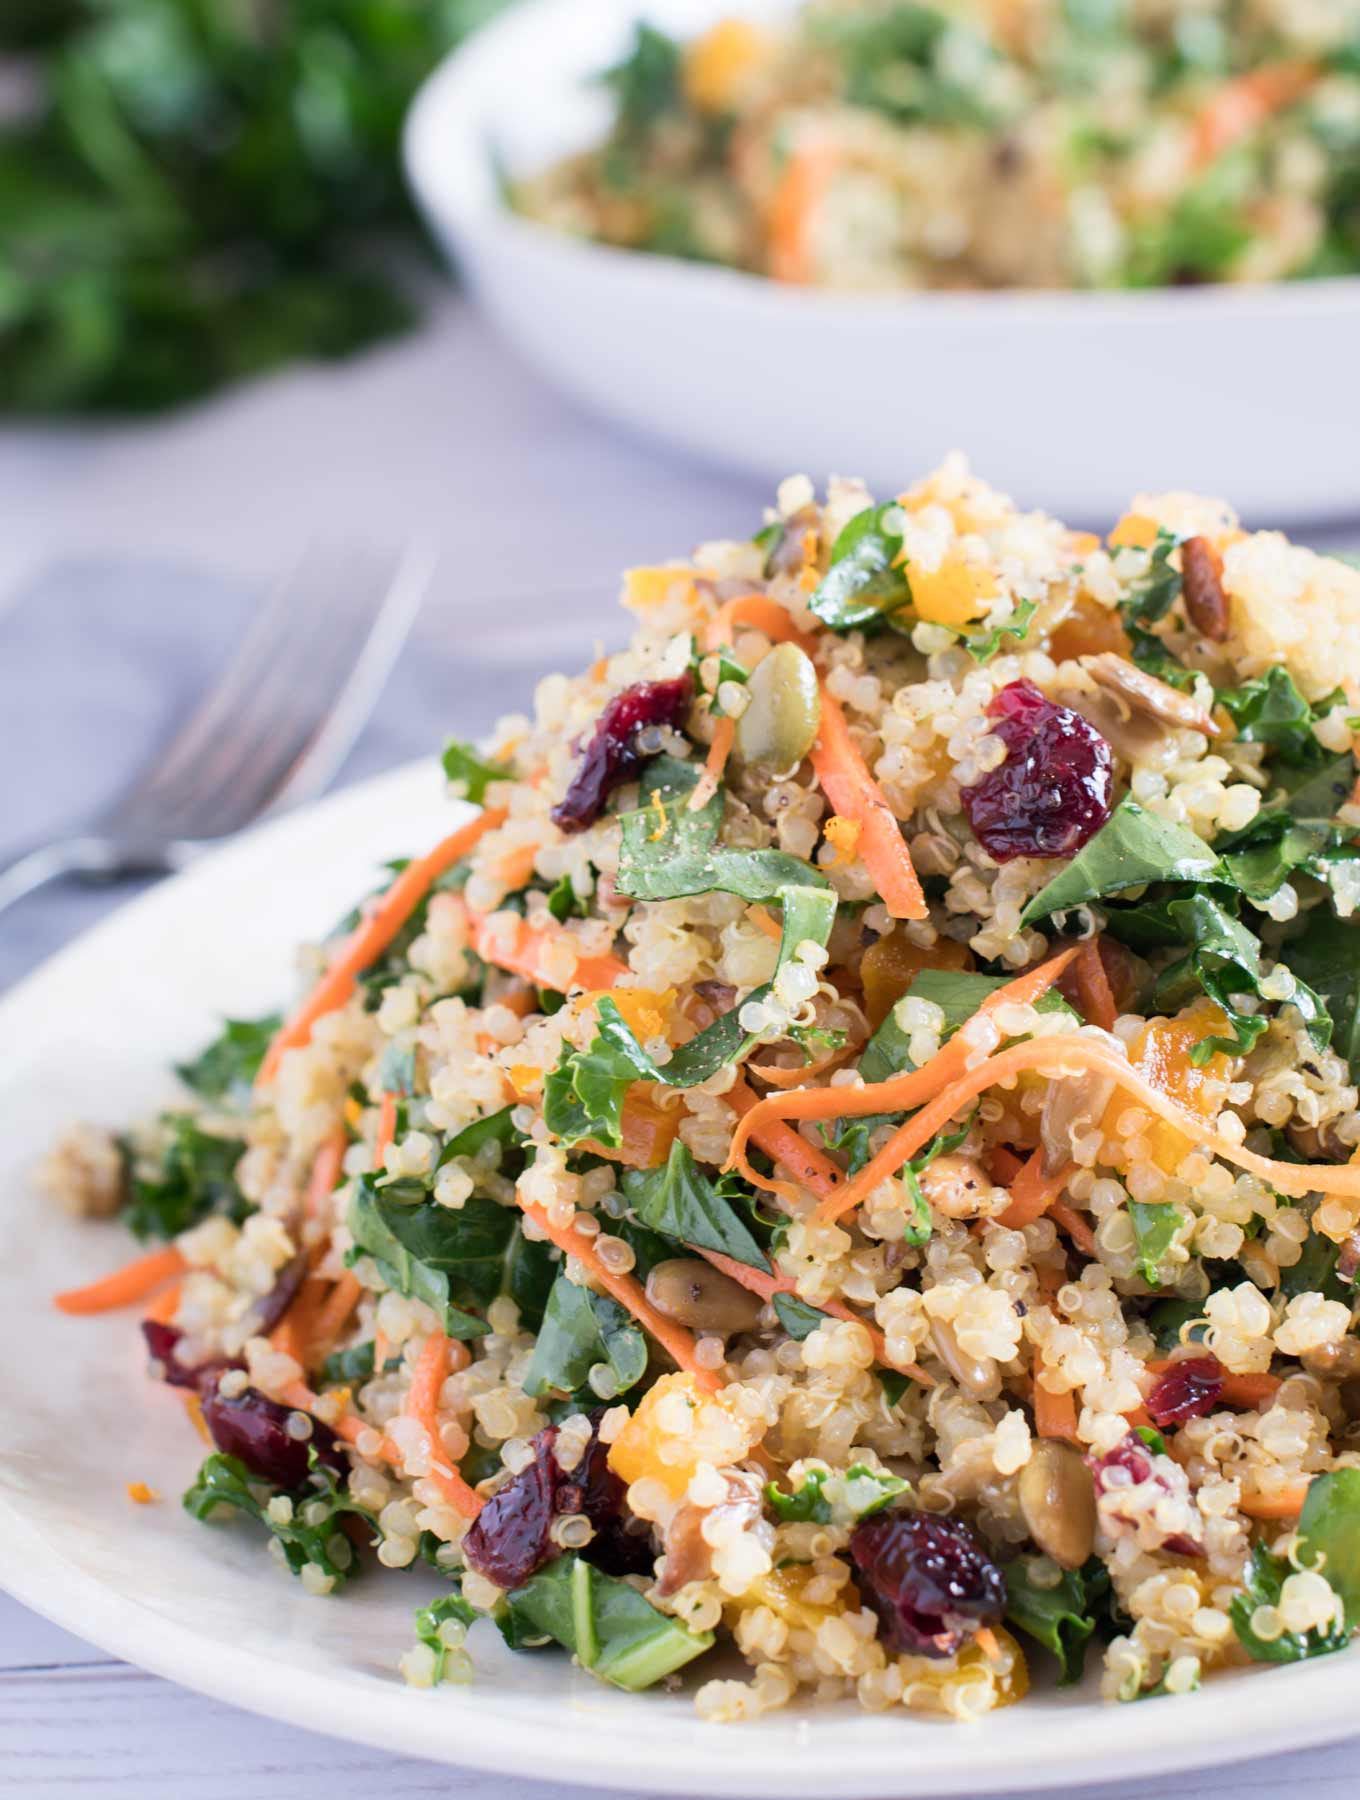 A winter kale and quinoa salad on a white plate.